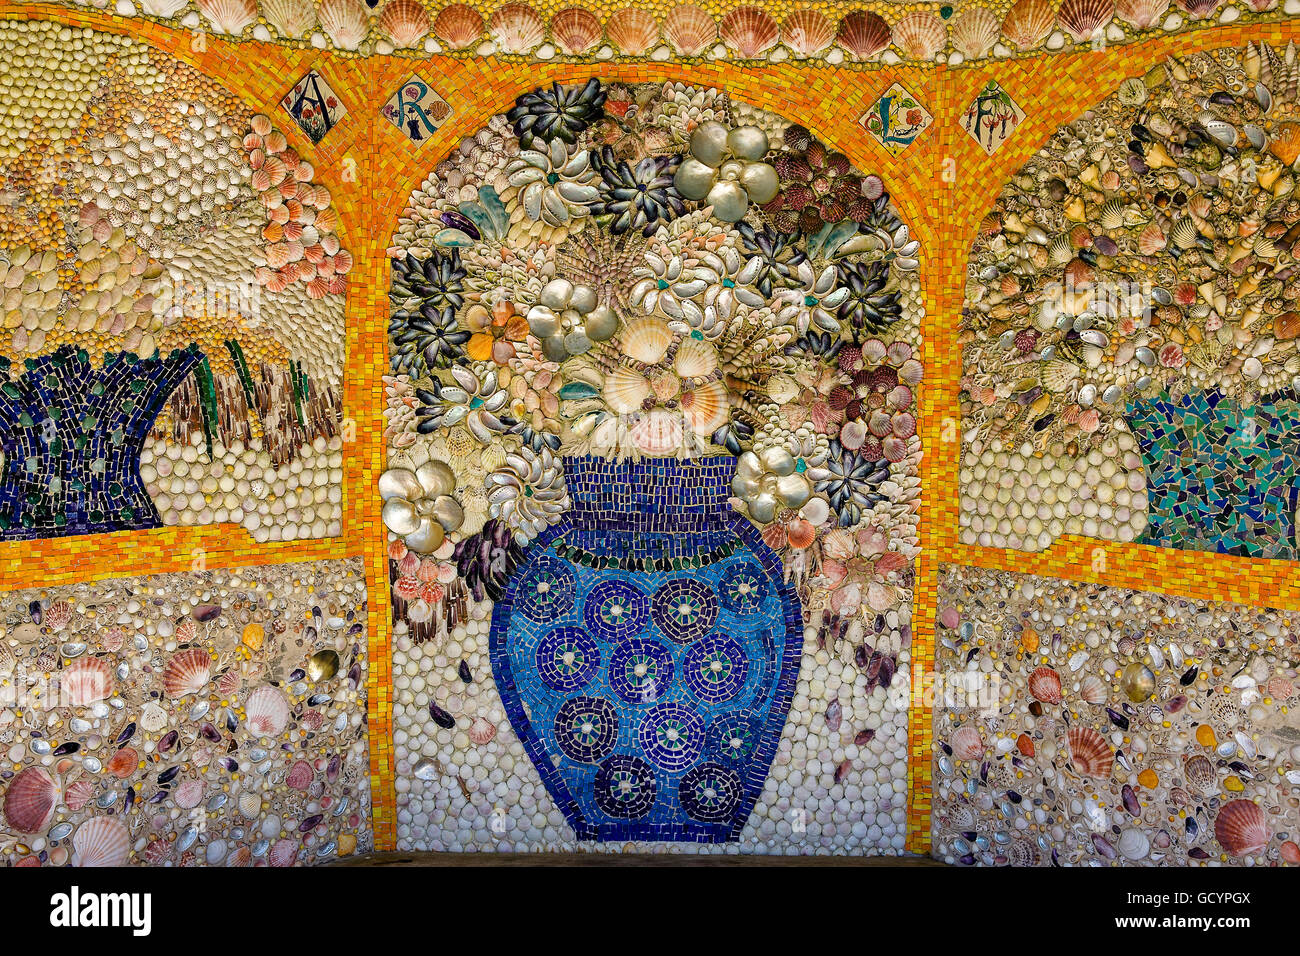 Shell mural, Mediterranean Garden, Tresco Abbey Gardens, Isles of Scilly, UK - Stock Image